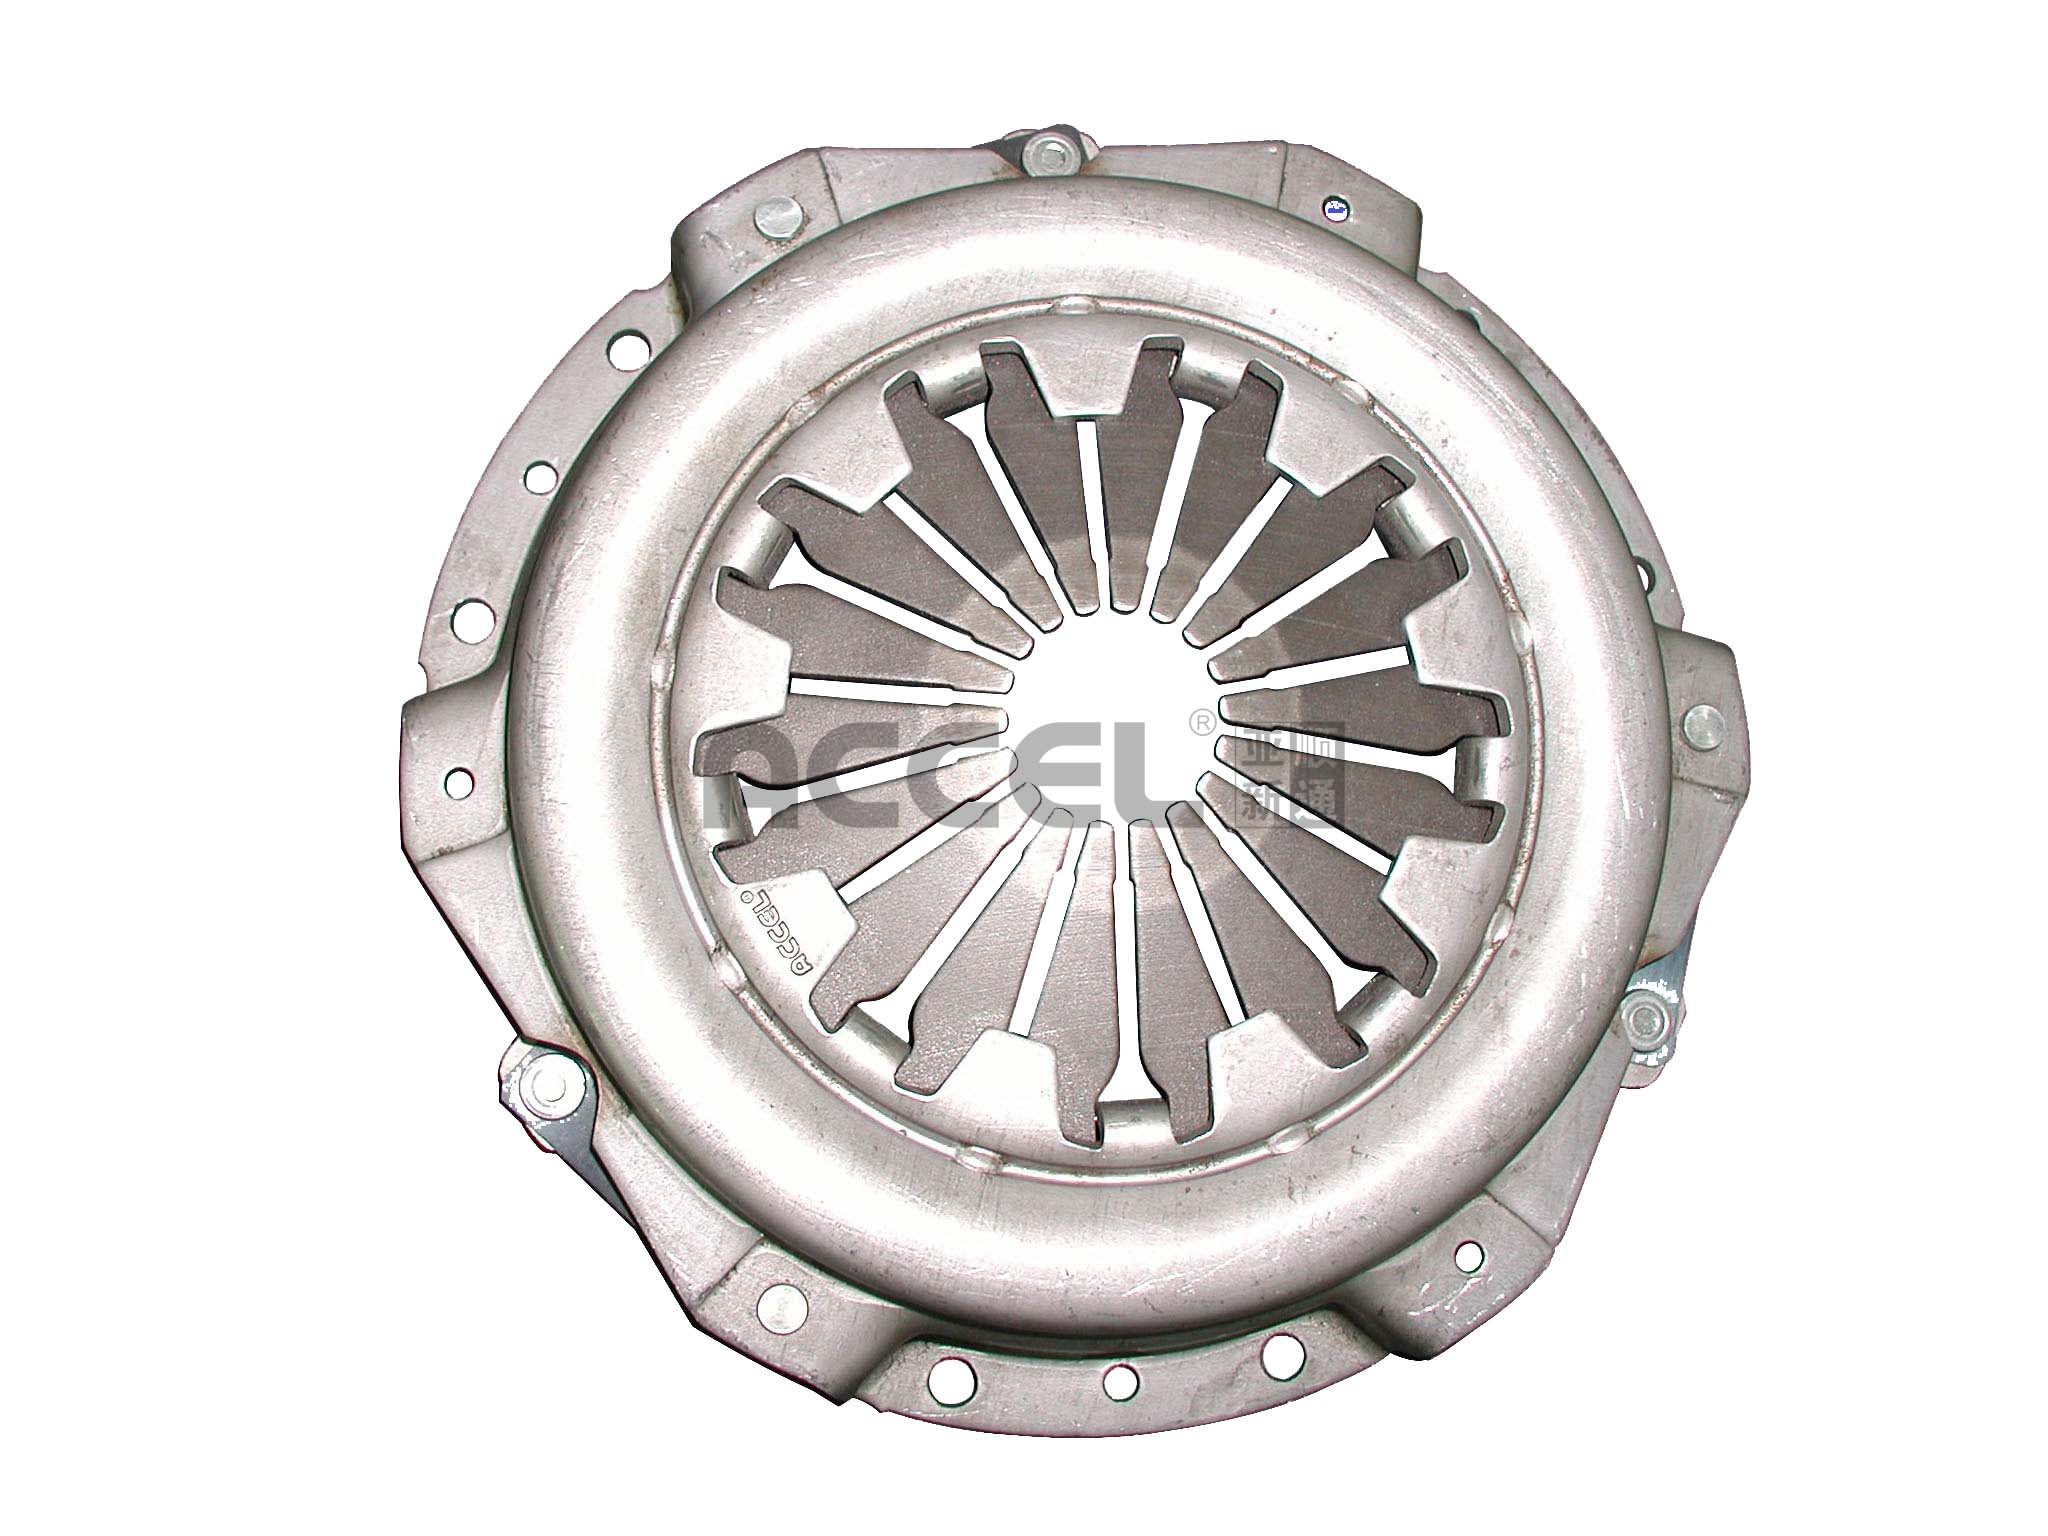 Clutch Cover/OE:800000/181*127*210/CPG-003/PEUGEOT/LY113/263927